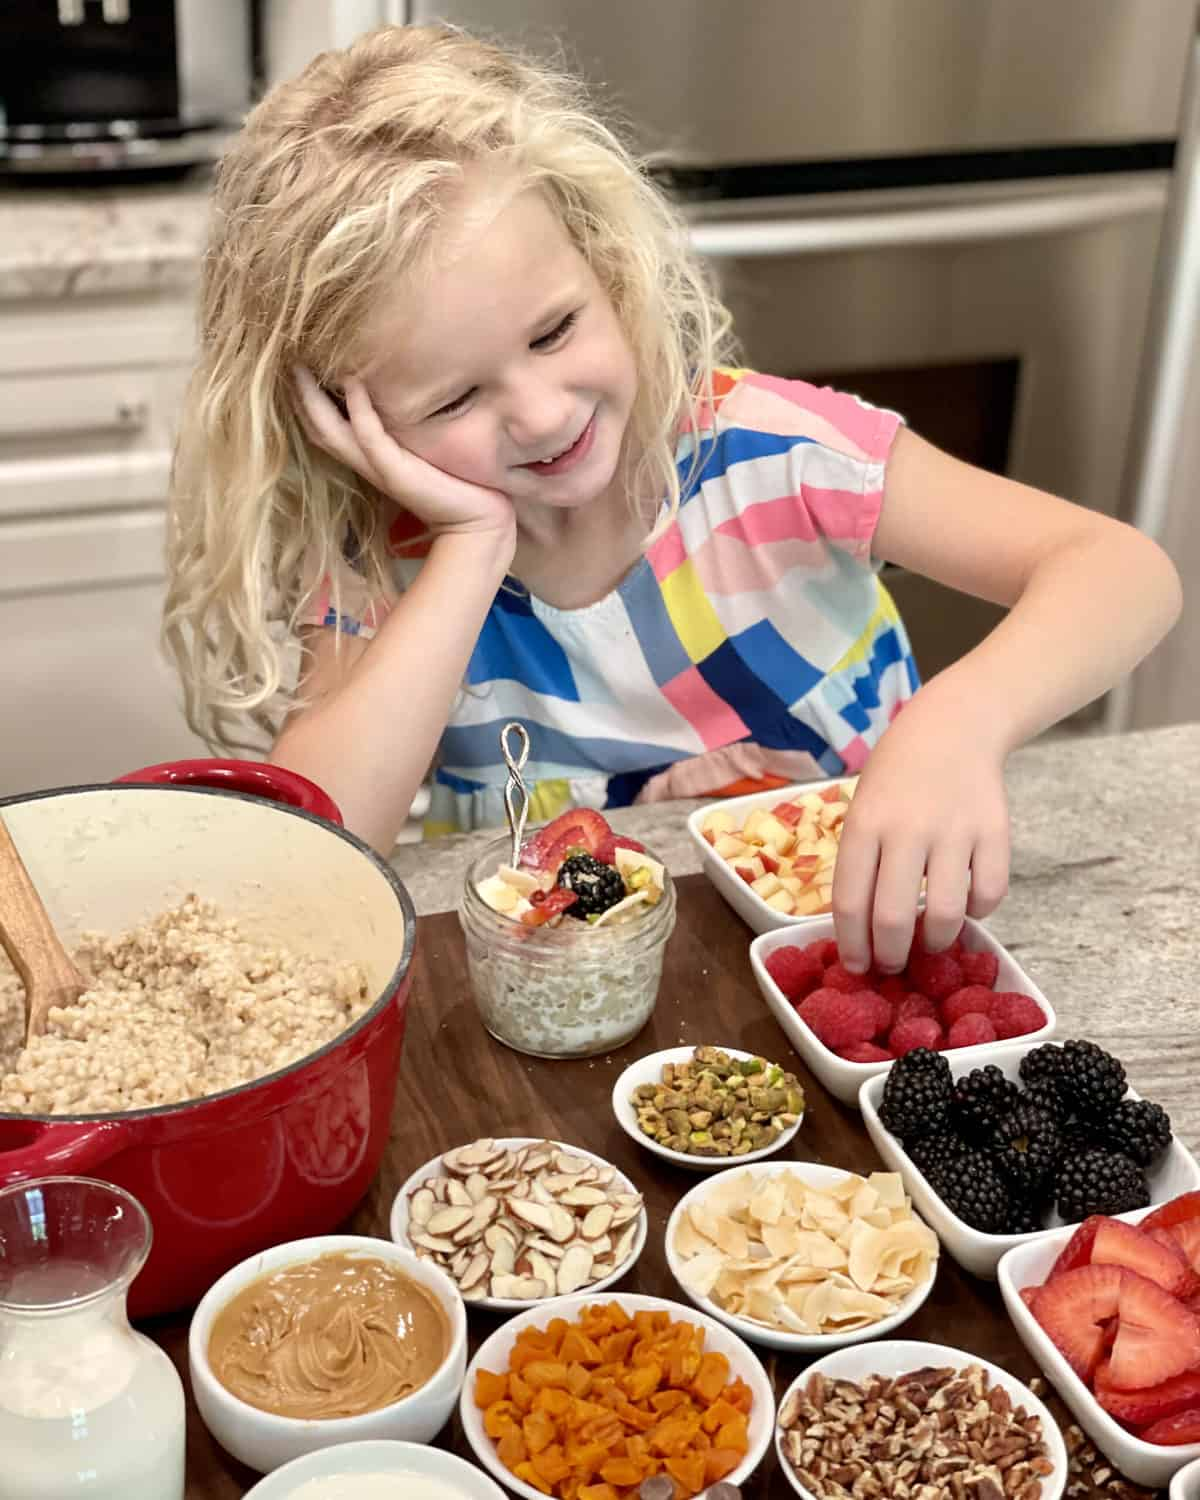 Top-Your-Own Oatmeal Board by The BakerMama